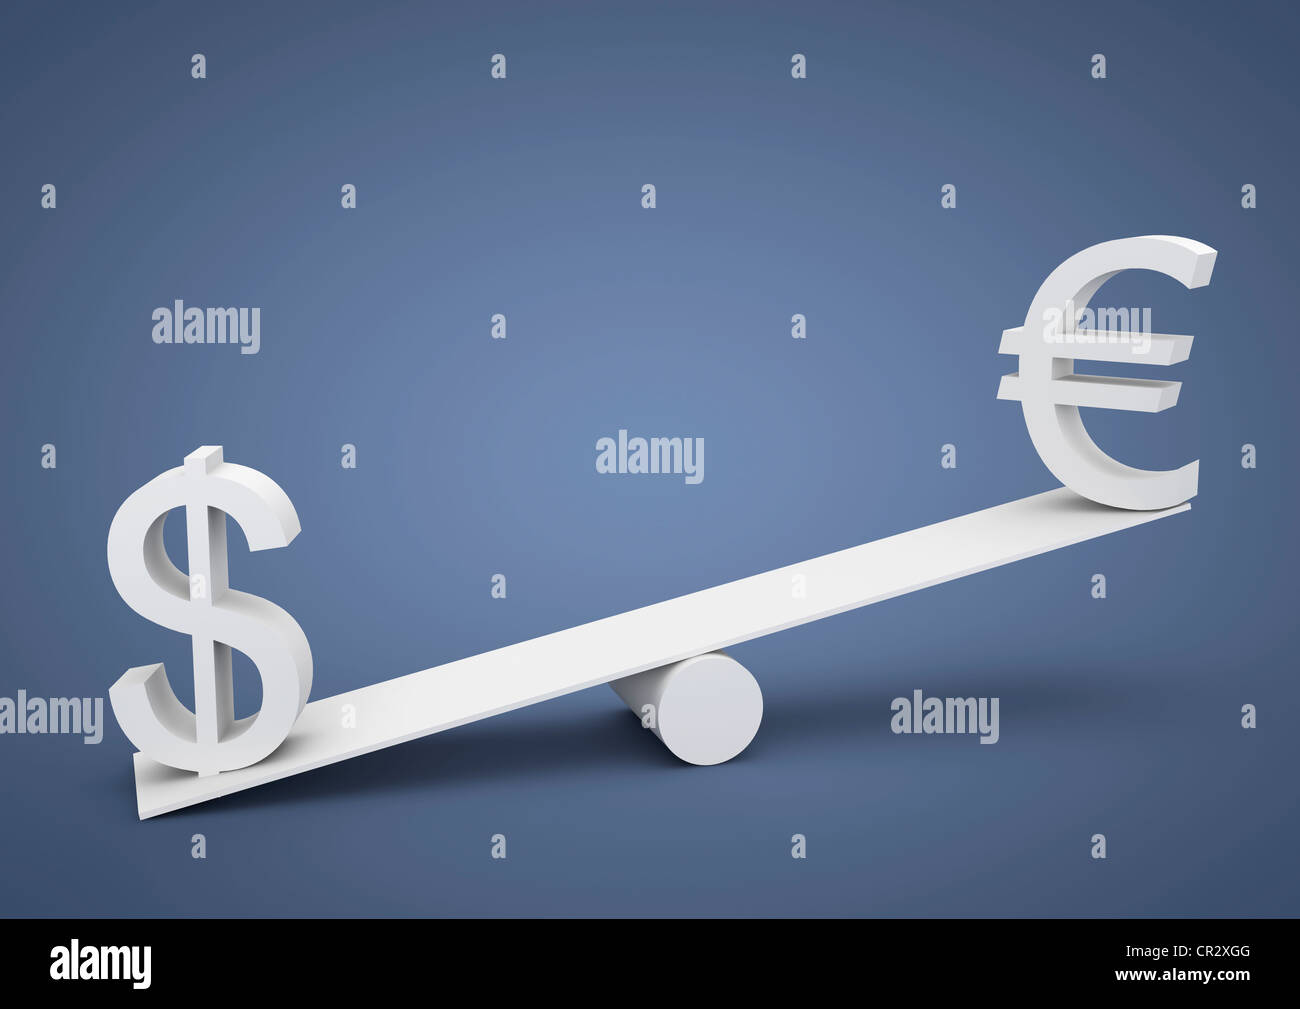 Seesaw out of balance, the U.S. dollar is heavier than the euro, currency, symbolic image for imbalance, dominance Stock Photo